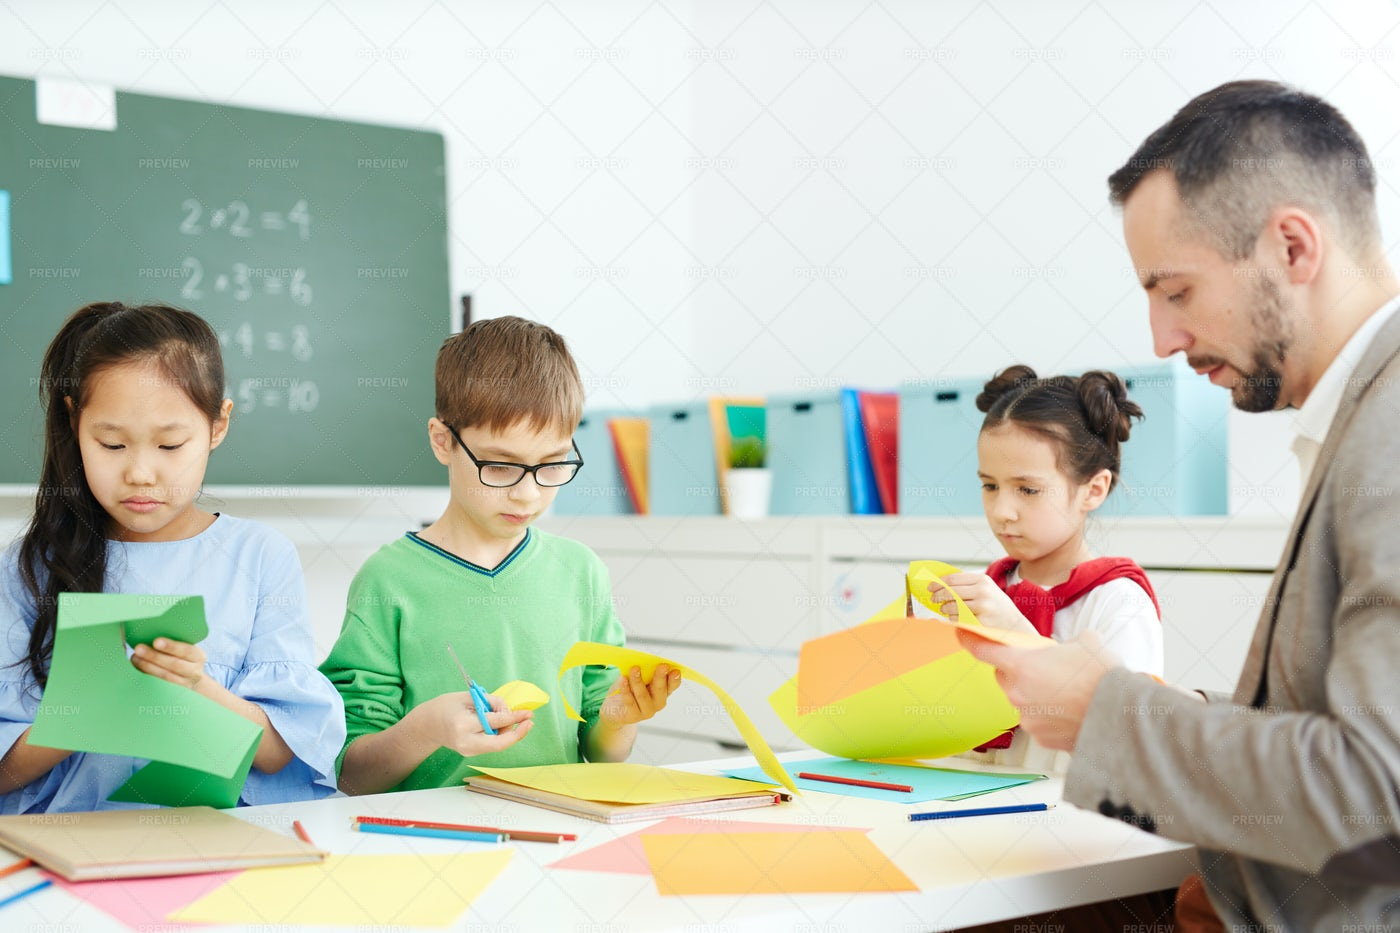 Kids Making Origami At School: Stock Photos